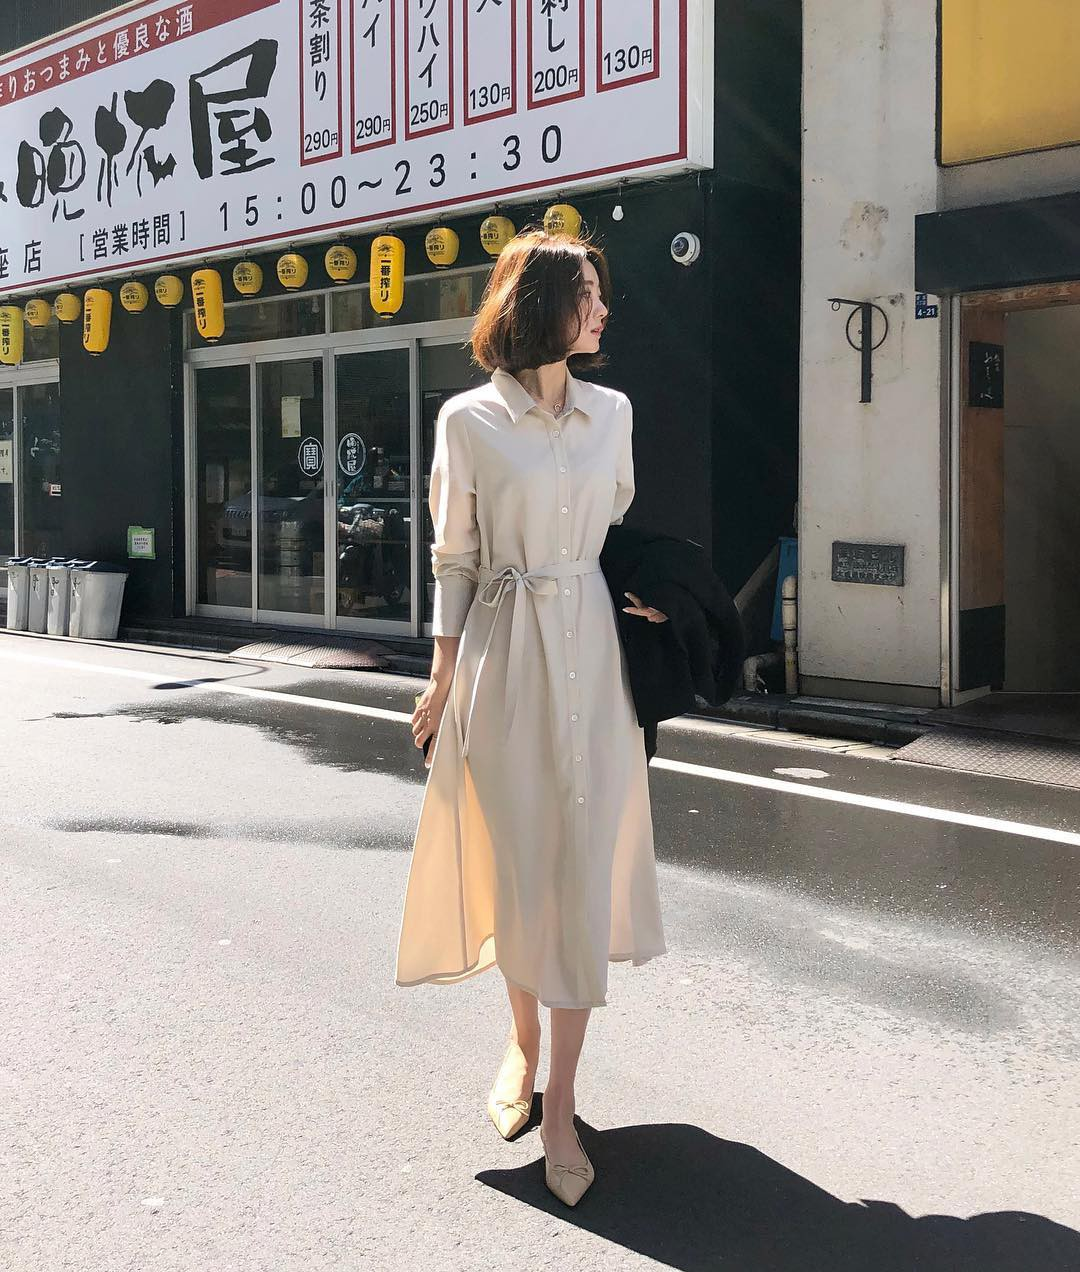 voh-phong-cach-toi-gian-minimalism-voh.com.vn-11